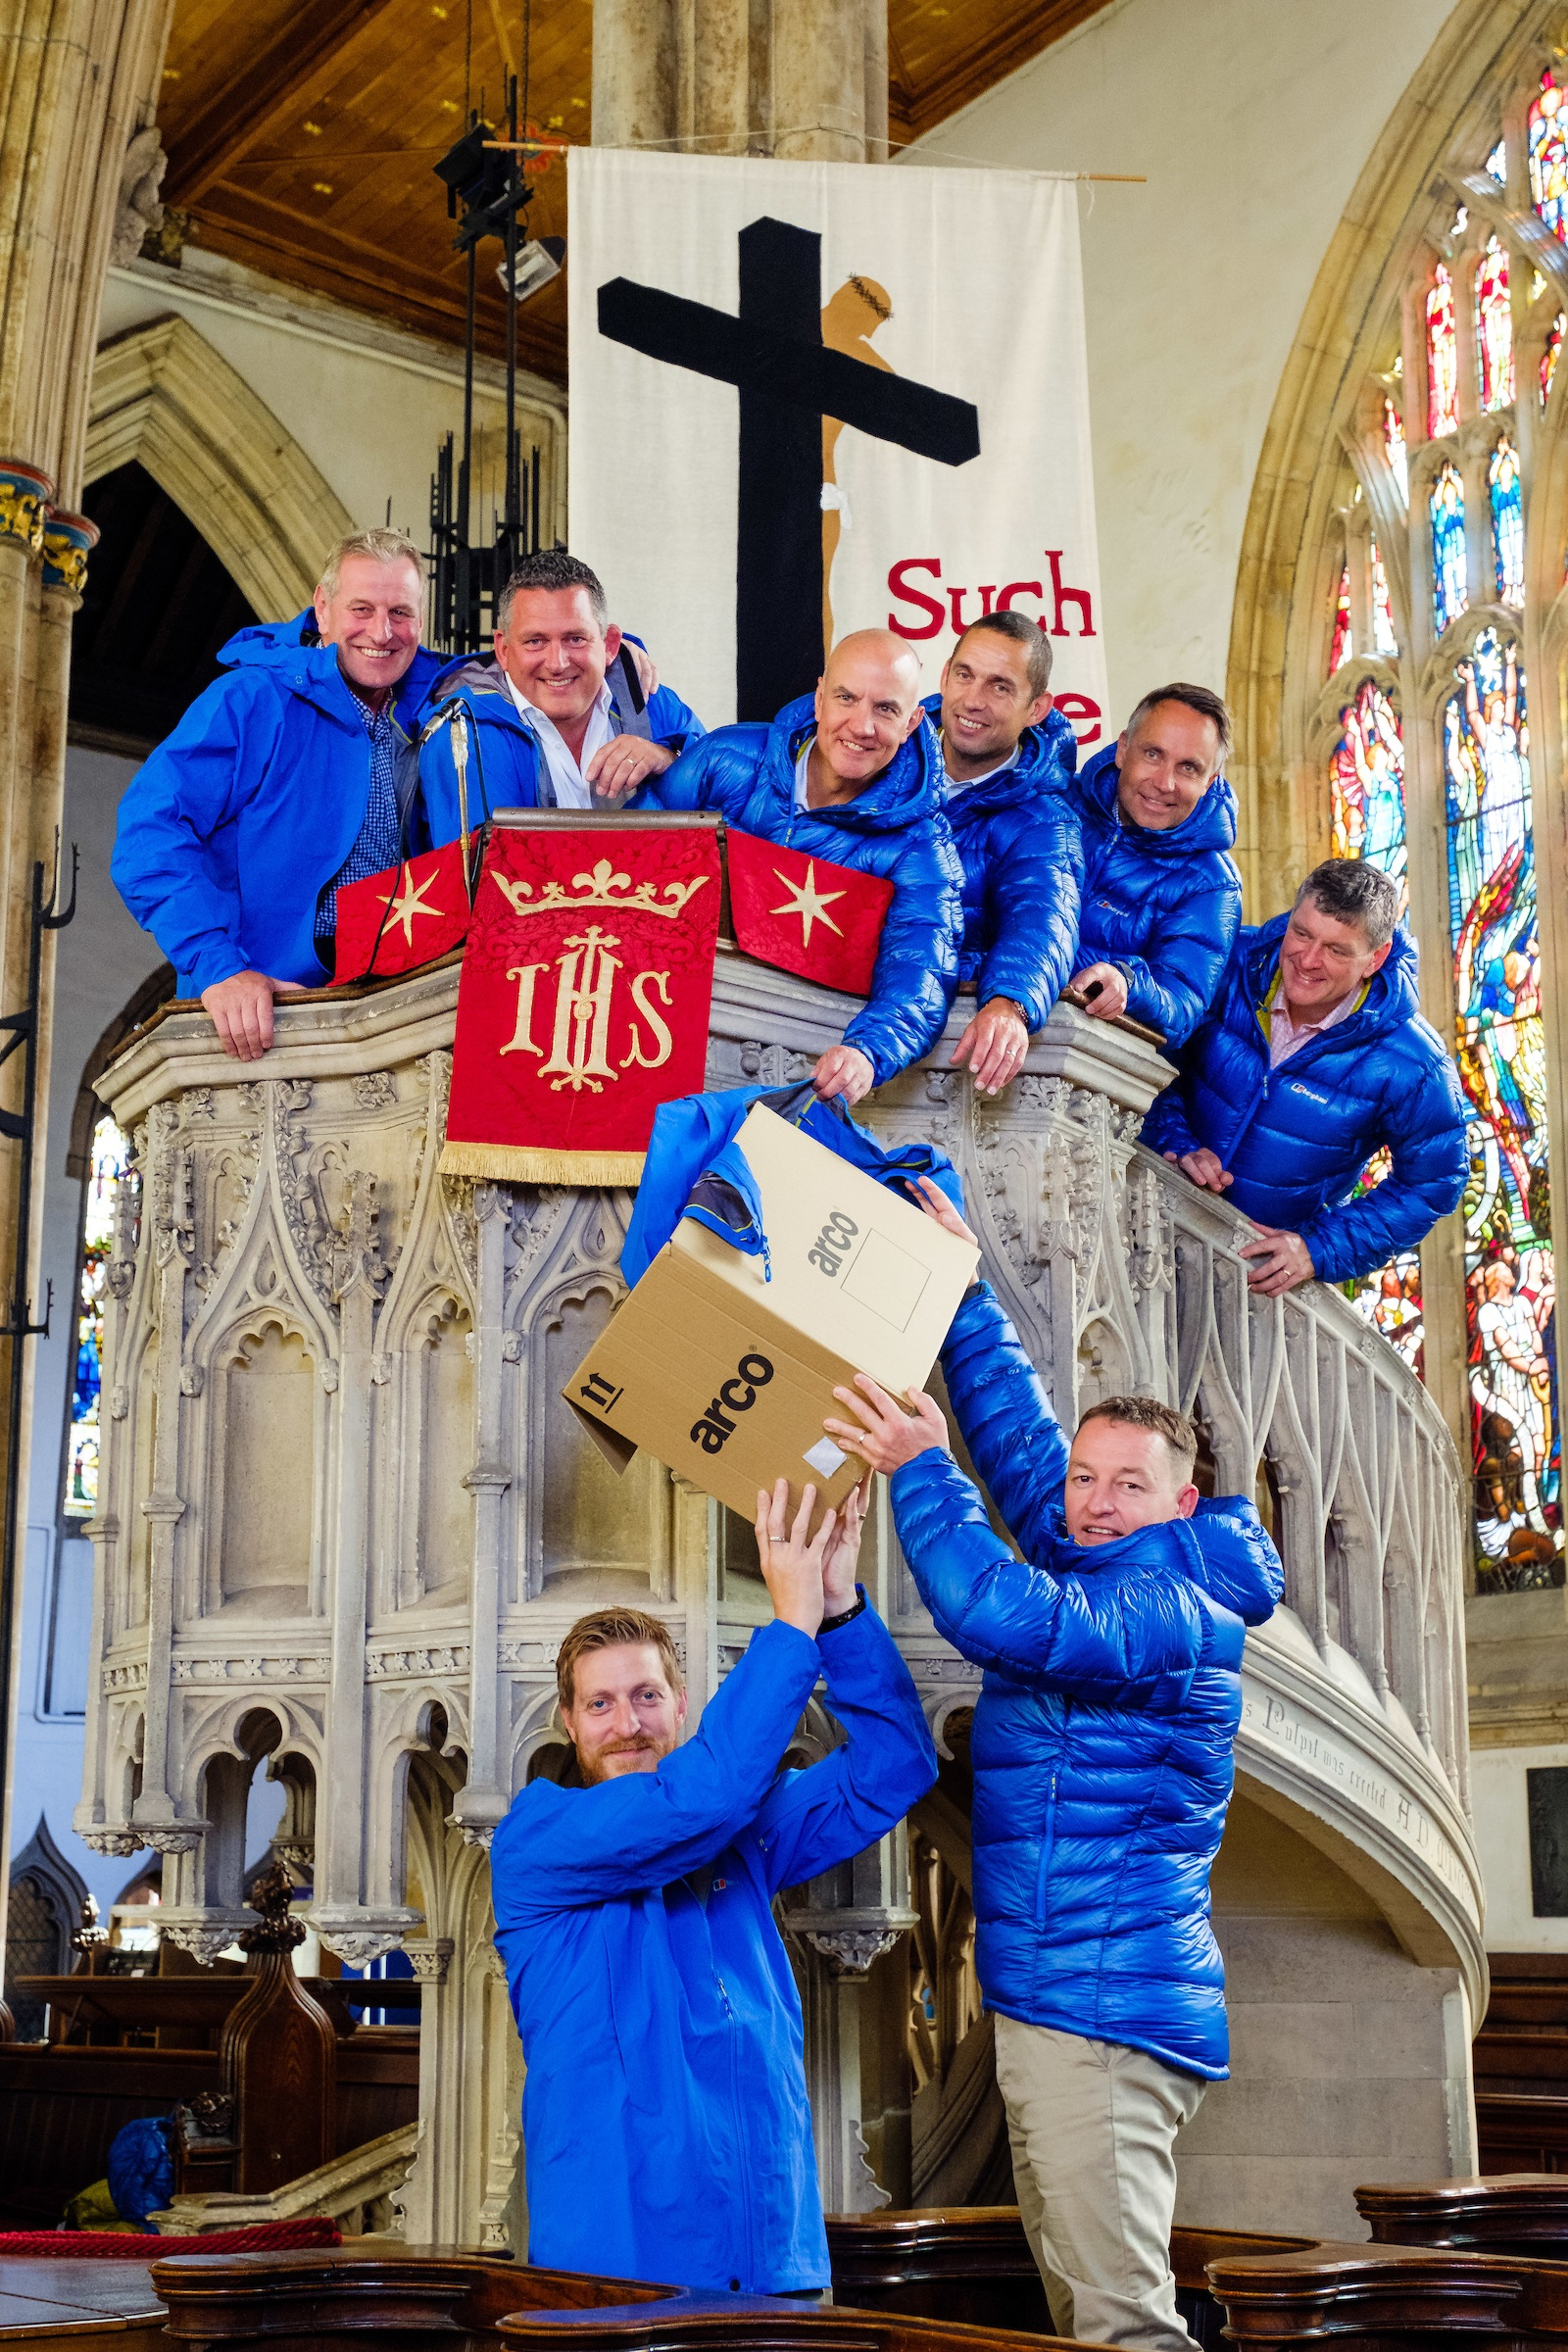 Andy Parkinson (Spencer Group), bottom left, and Neil Riseham (Arco) pass the donated clothing to Kilimanjaro team members, from left, Andy Allenby (Allenby Commercial), Nic Marshall (ResQ Outsource Solutions), Jonathan Leafe (Strawberry), Dave Garness (Garness Jones), Nick Ward (Alan Wood and Partners) and Brian Gilliland (Holy Trinity) in the pulpit at historic Holy Trinity Church